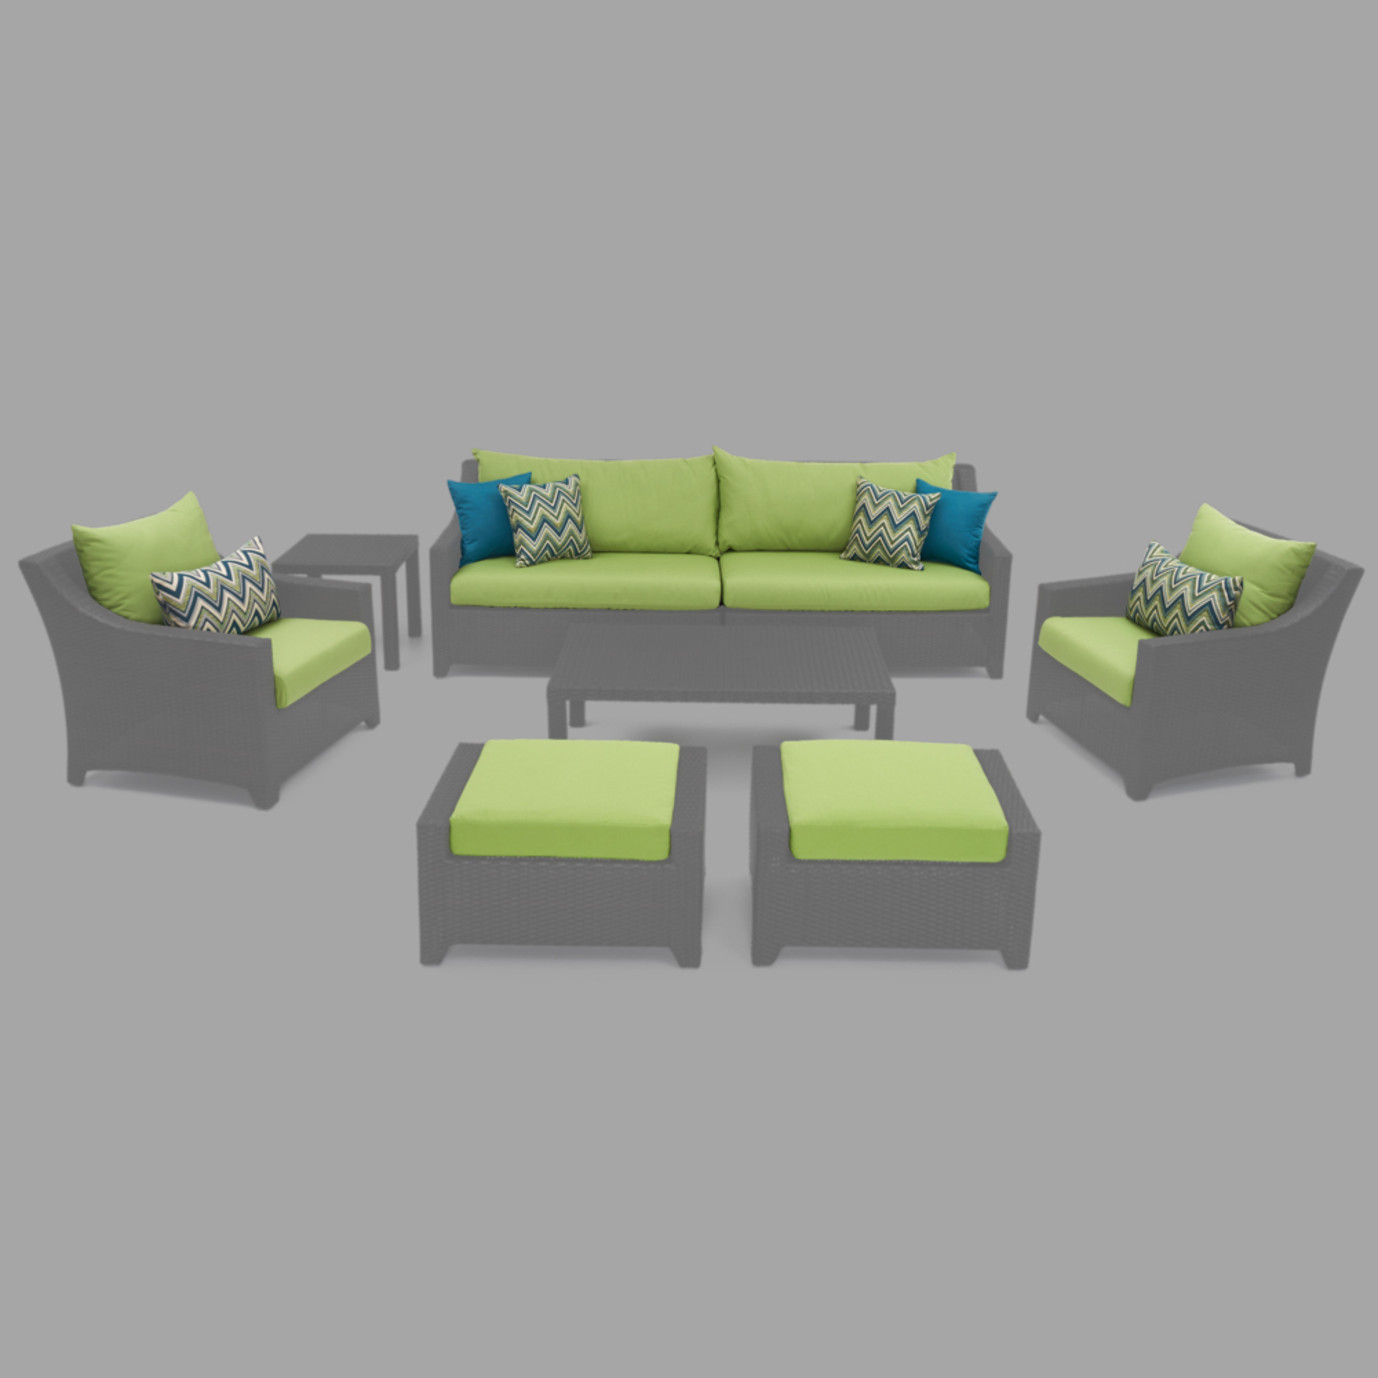 Modular Outdoor 8pc Club Cushion Cover Set - Gingko Green